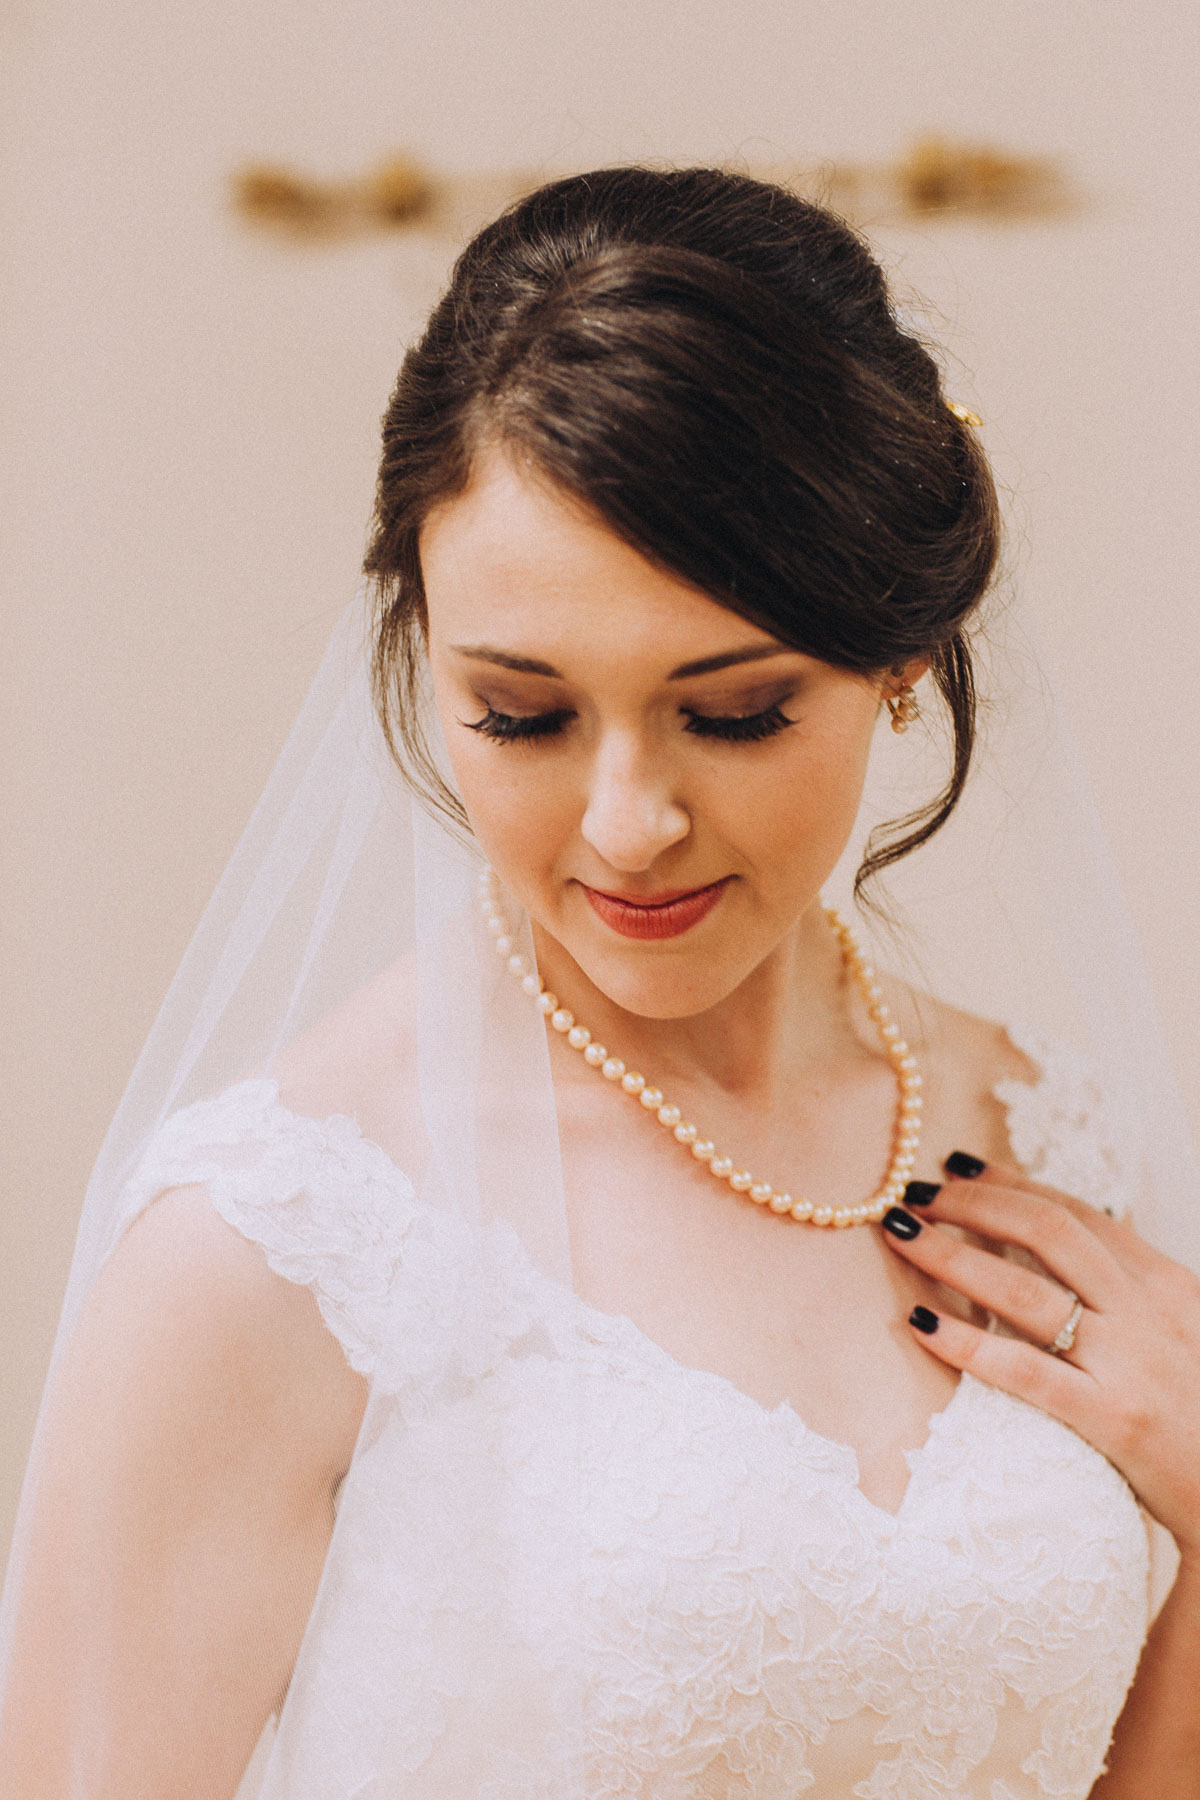 Portait of bride looking down and holding her pearl necklace.